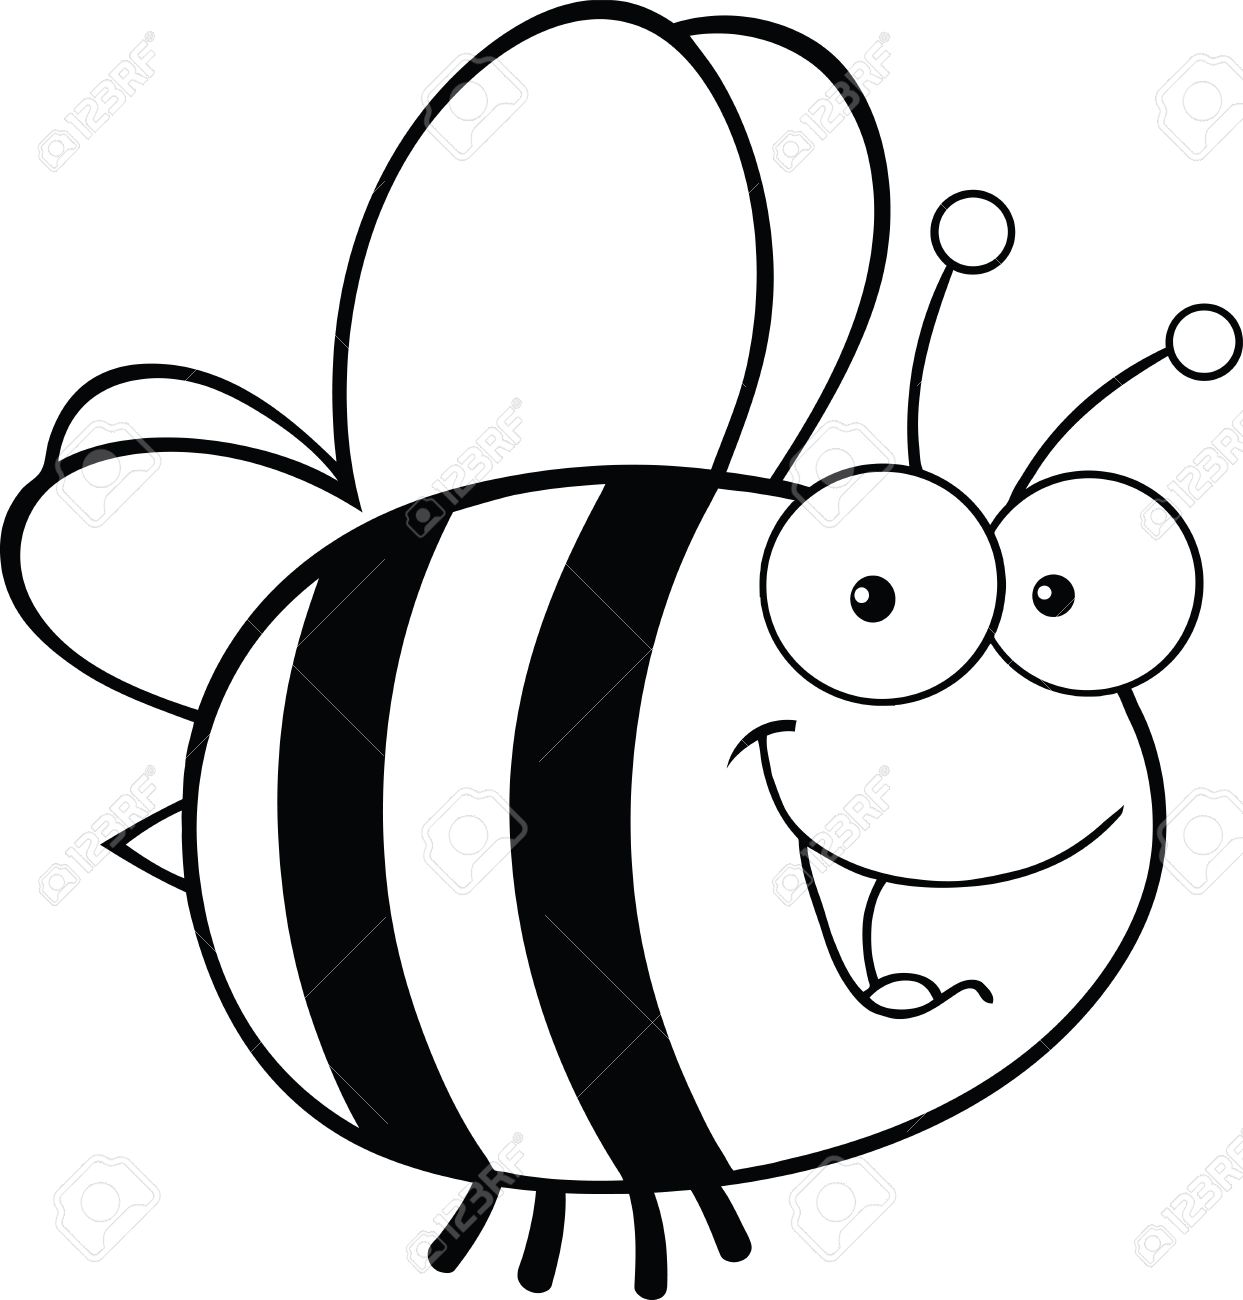 Black And White Cute Bee Cartoon Mascot Character Royalty Free